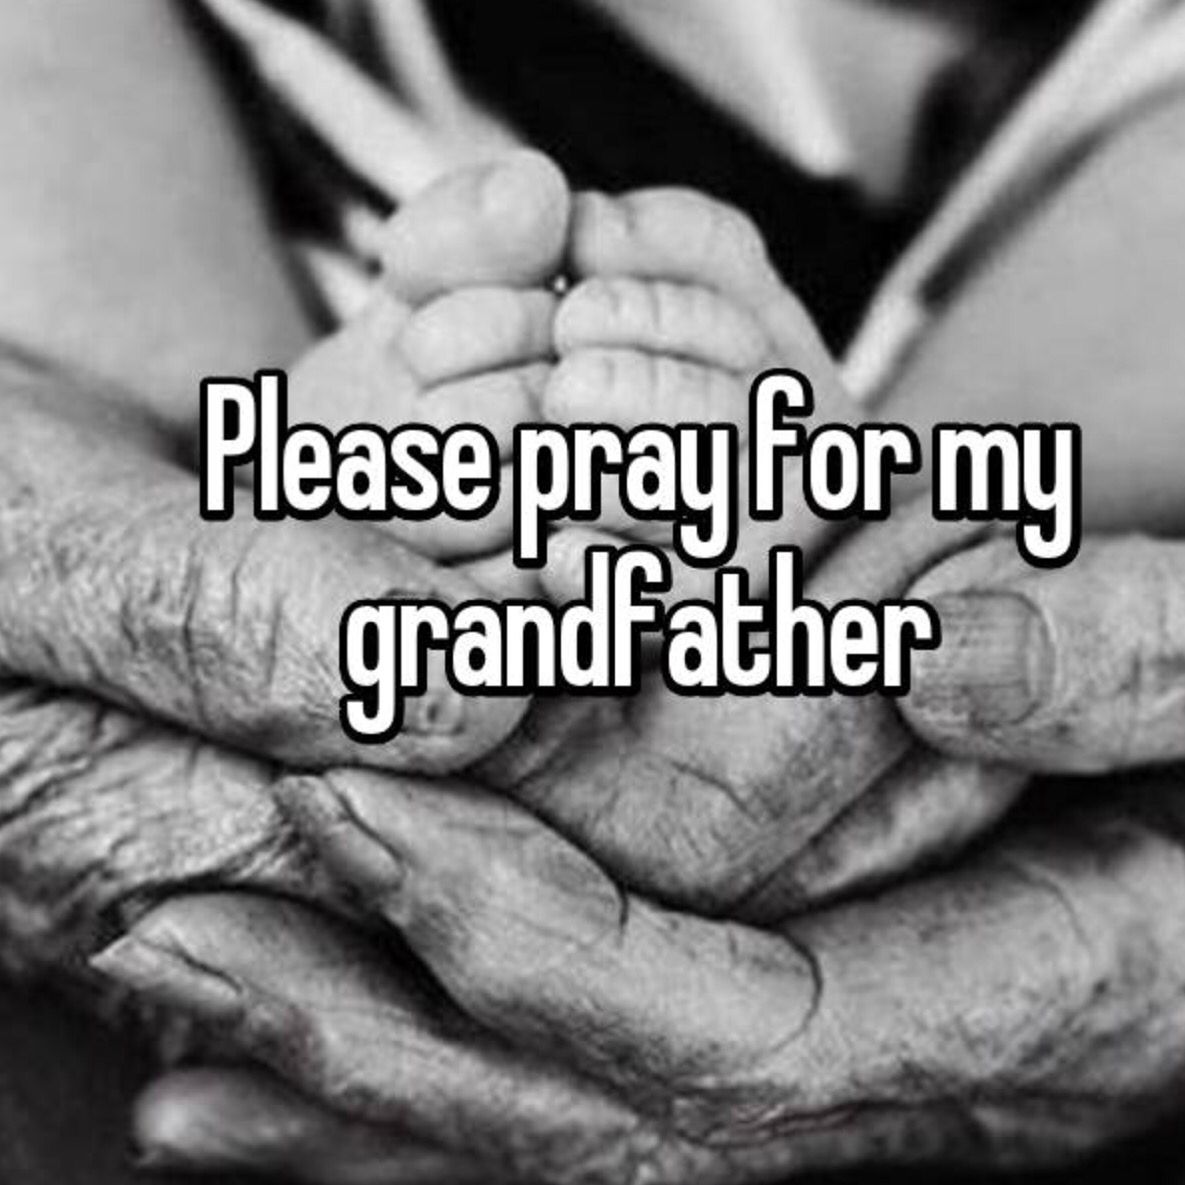 https://instagram.com/p/__fA4nFvp0/  Please pray for my grandfather because he is getting heart surgery...like this picture if your gonna pray.